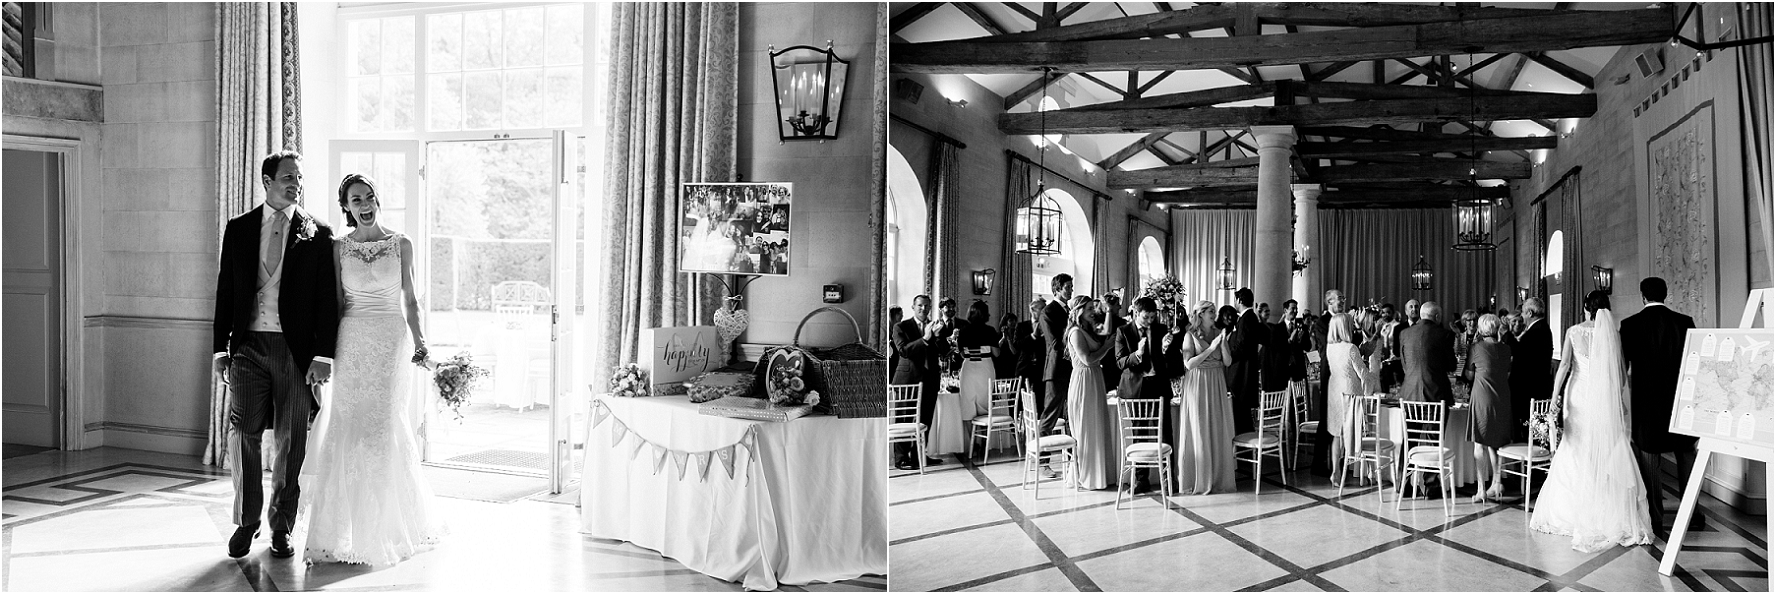 Wedding Photography The Orangery Settringham_0269